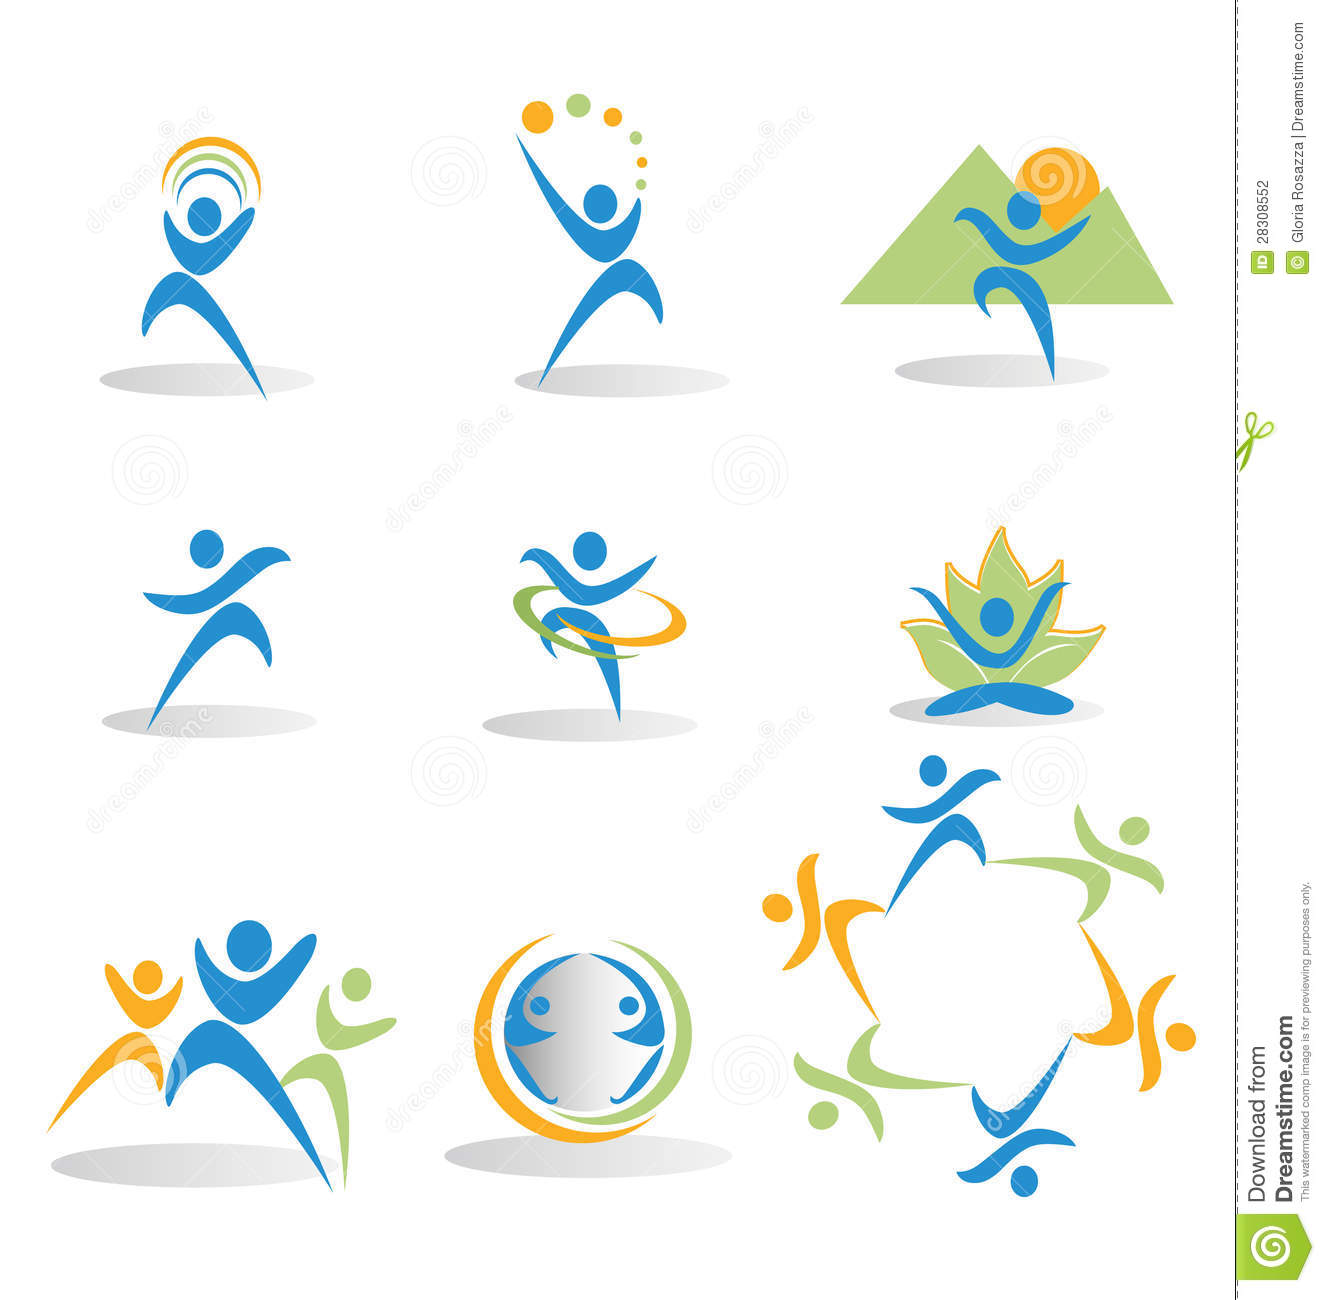 Set of figures in business and social icons logos